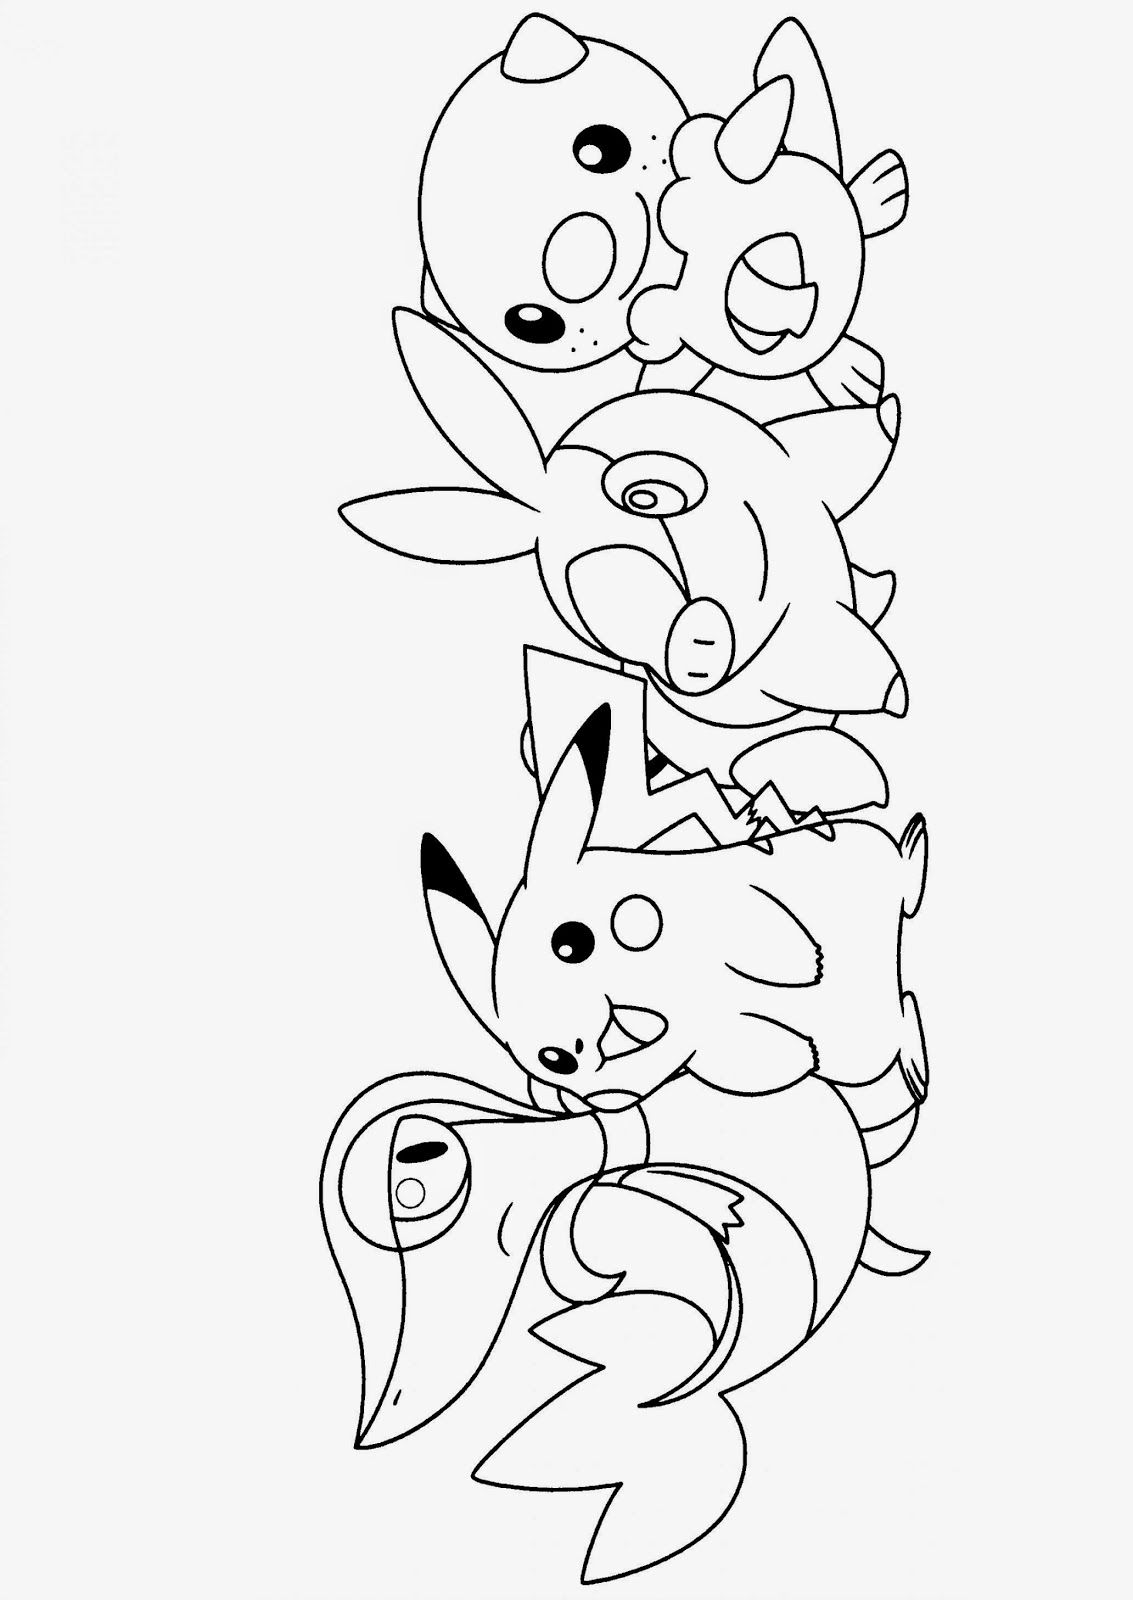 Pokemon Black And White Coloring Pages To Print Az Black And White Colouring Pages